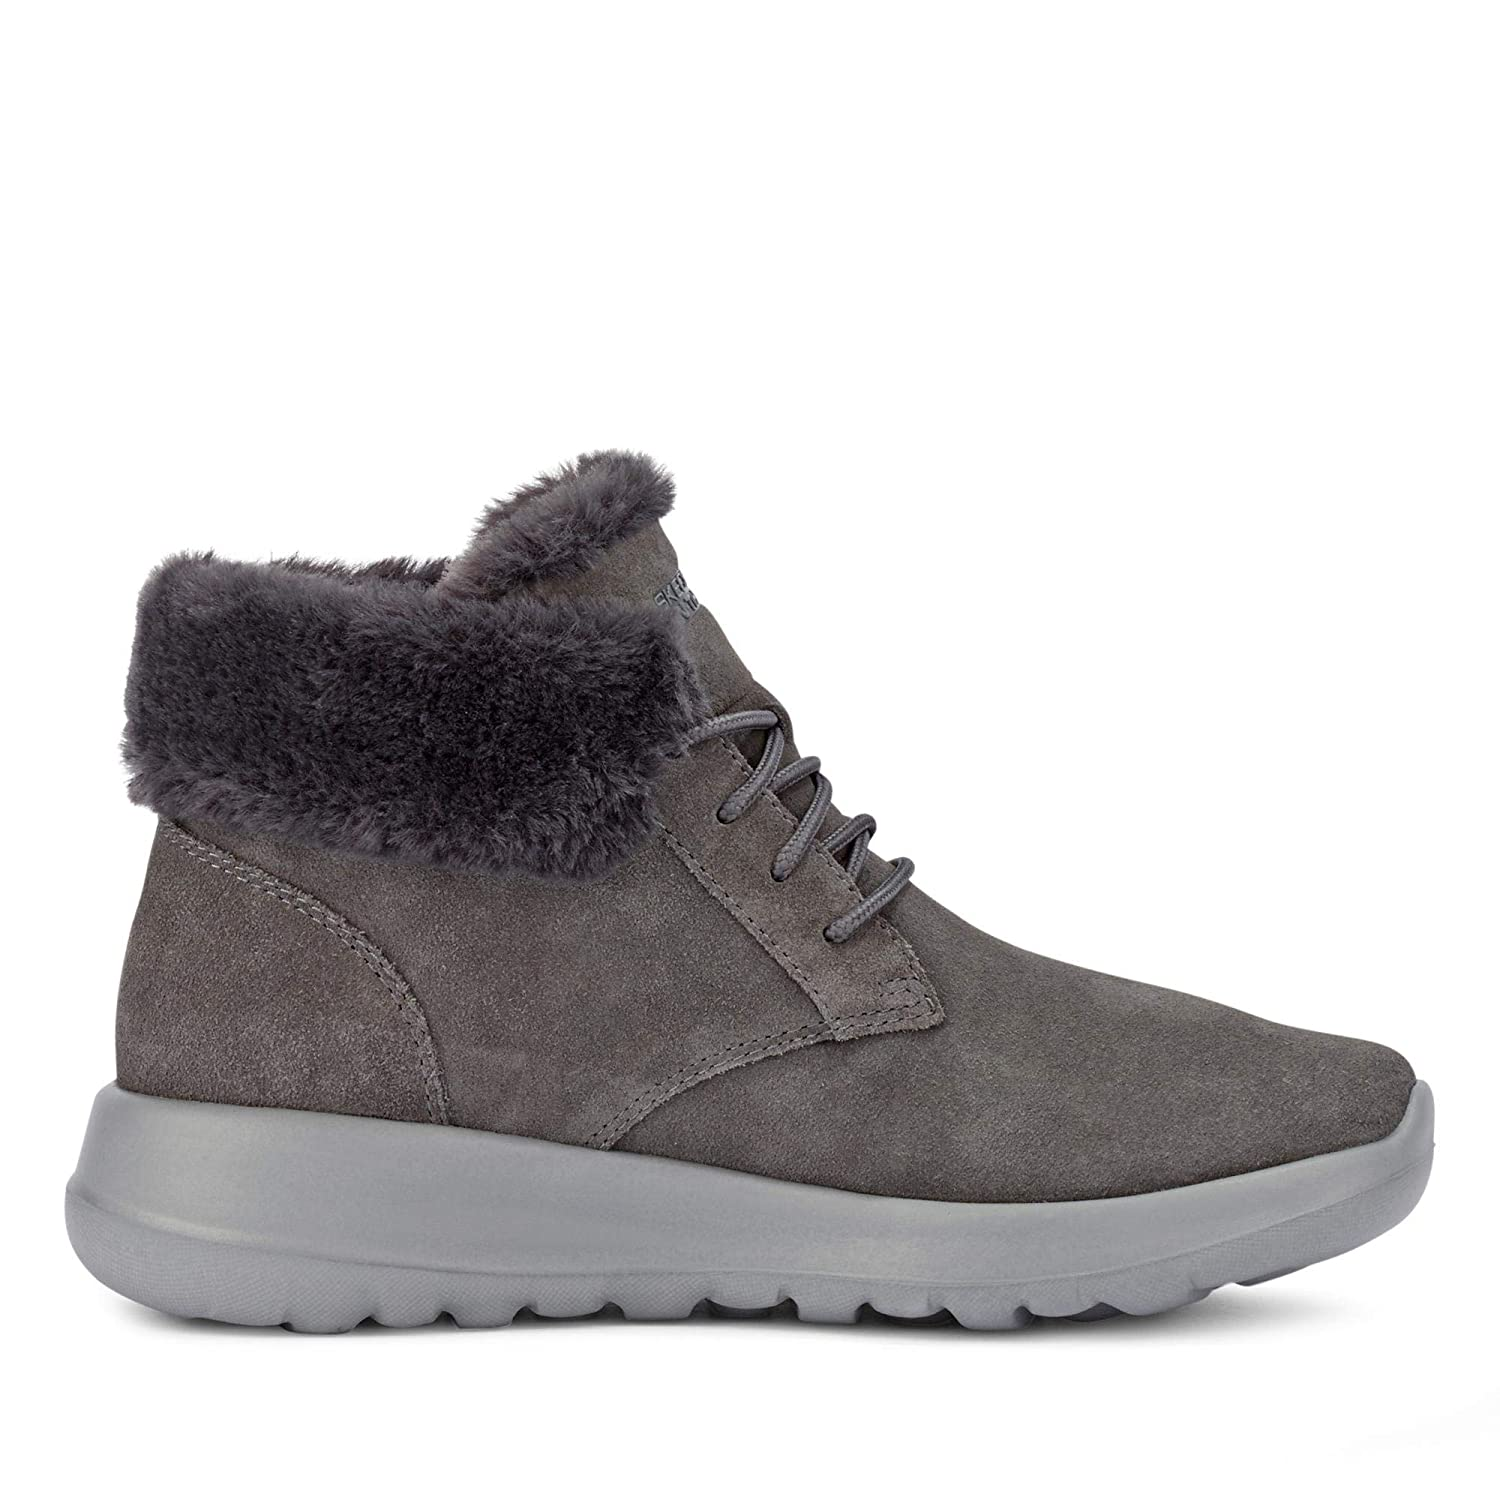 Skechers 15506 Char On The Go Joy Lush Damen Boots Veloursleder warm gefüttert